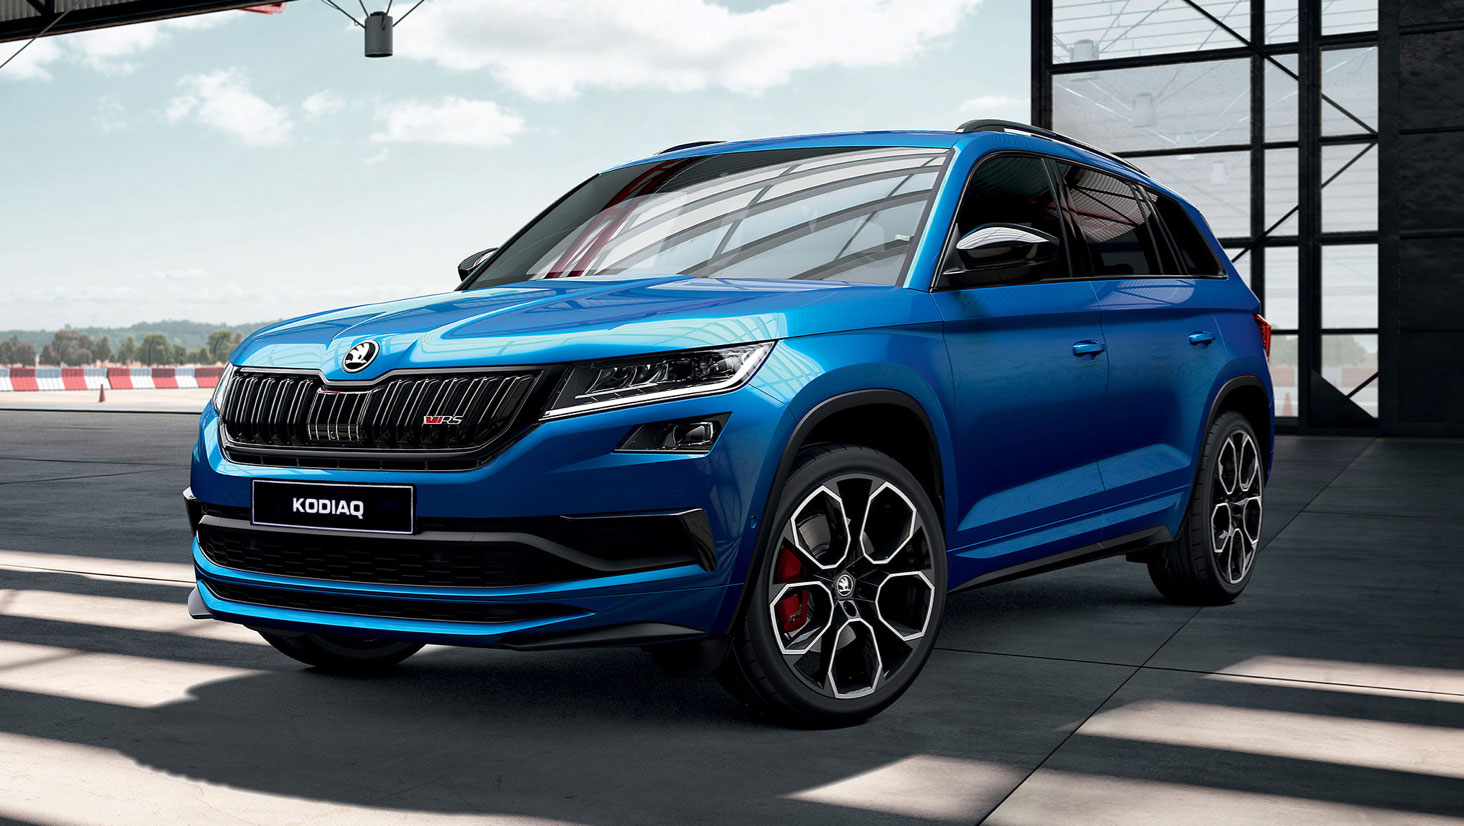 KODIAQ SUV<br>PERFORMANCE THAT'S NOT FOR SHOW